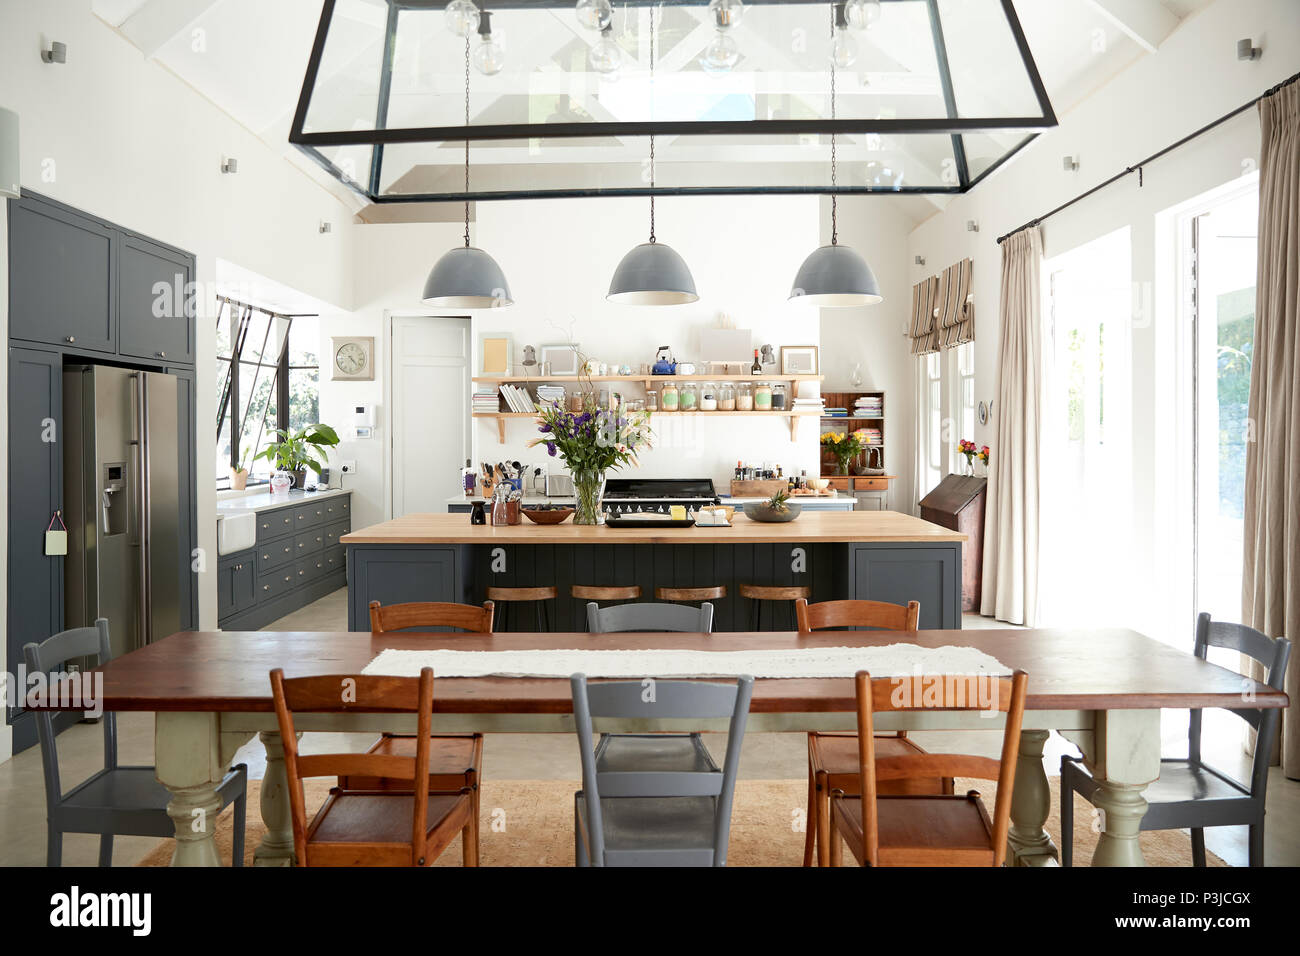 Open Plan Kitchen Diner In A Period Conversion Family Home Stock Photo Alamy